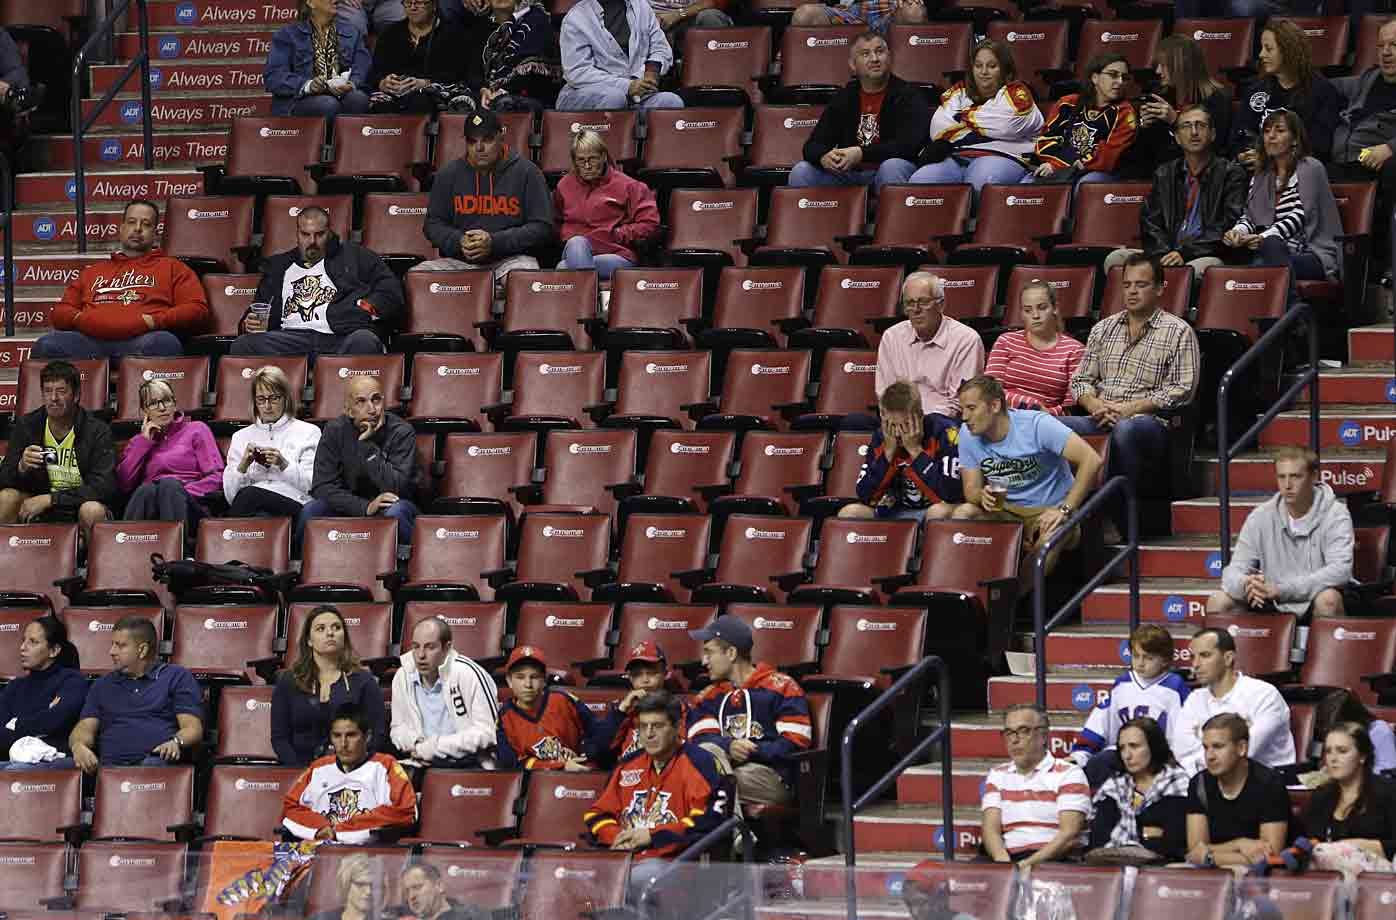 Plenty of good seats available: Crickets and owls outnumber the 7,311 fans who showed up at the BB&T Center to watch the hometown Florida Panthers take on Ottawa. The smallest NHL crowd in three years was treated to a 1-0 barn burner won by the Senators.